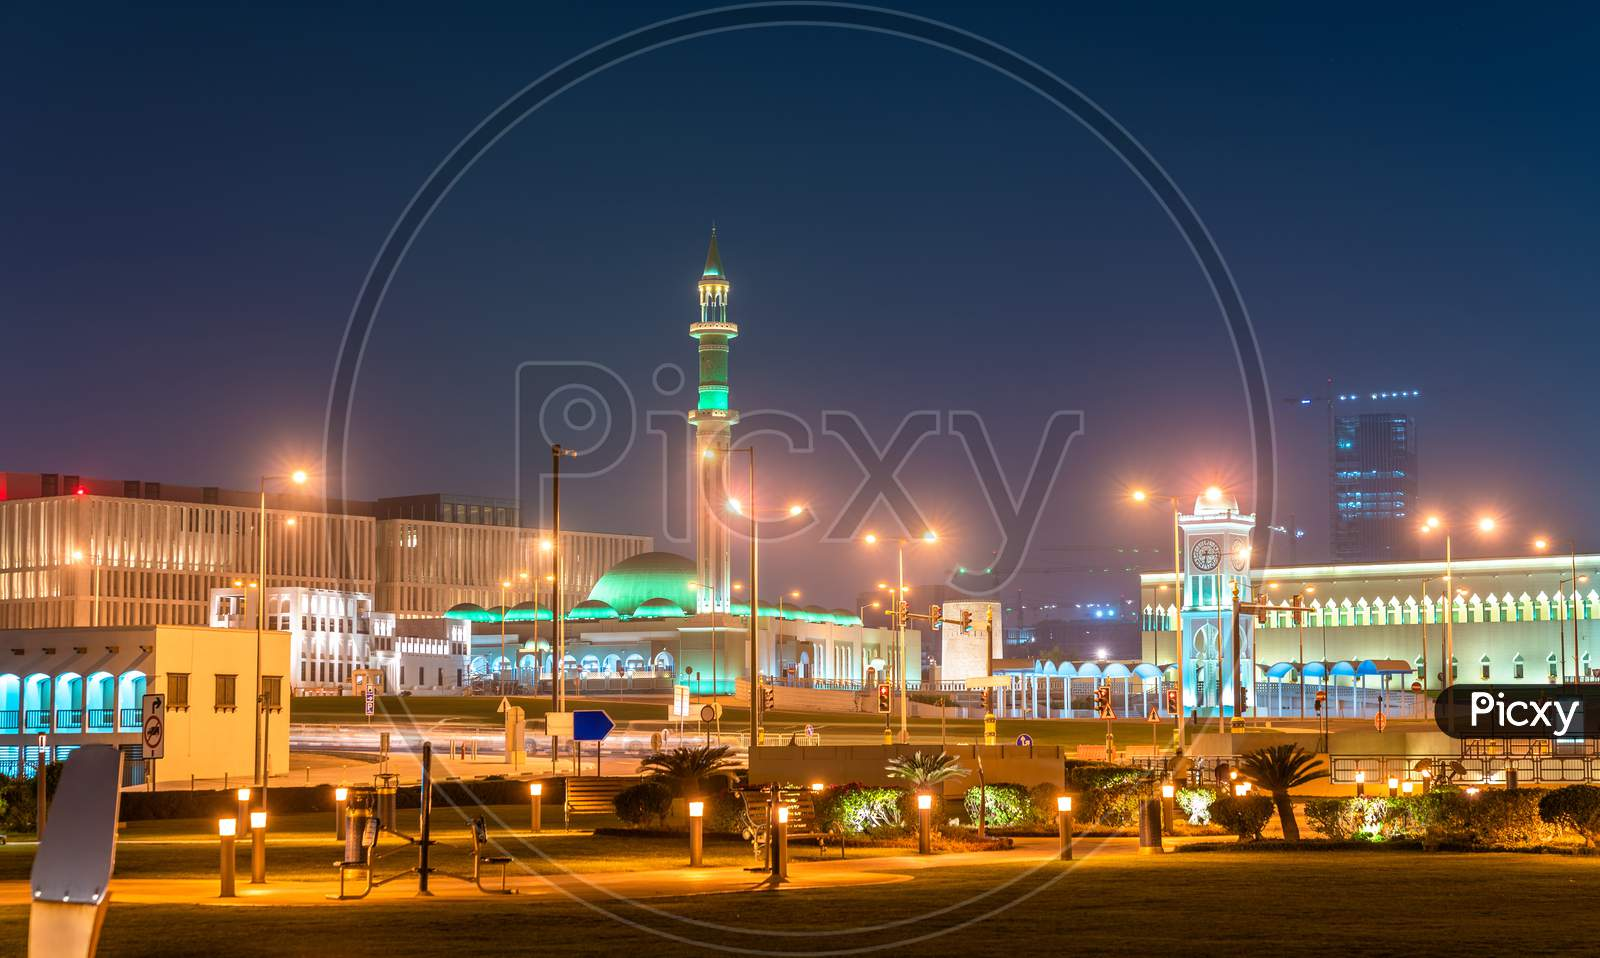 Al Shouyoukh Mosque And Clock Tower In Doha, The Capital Of Qatar.